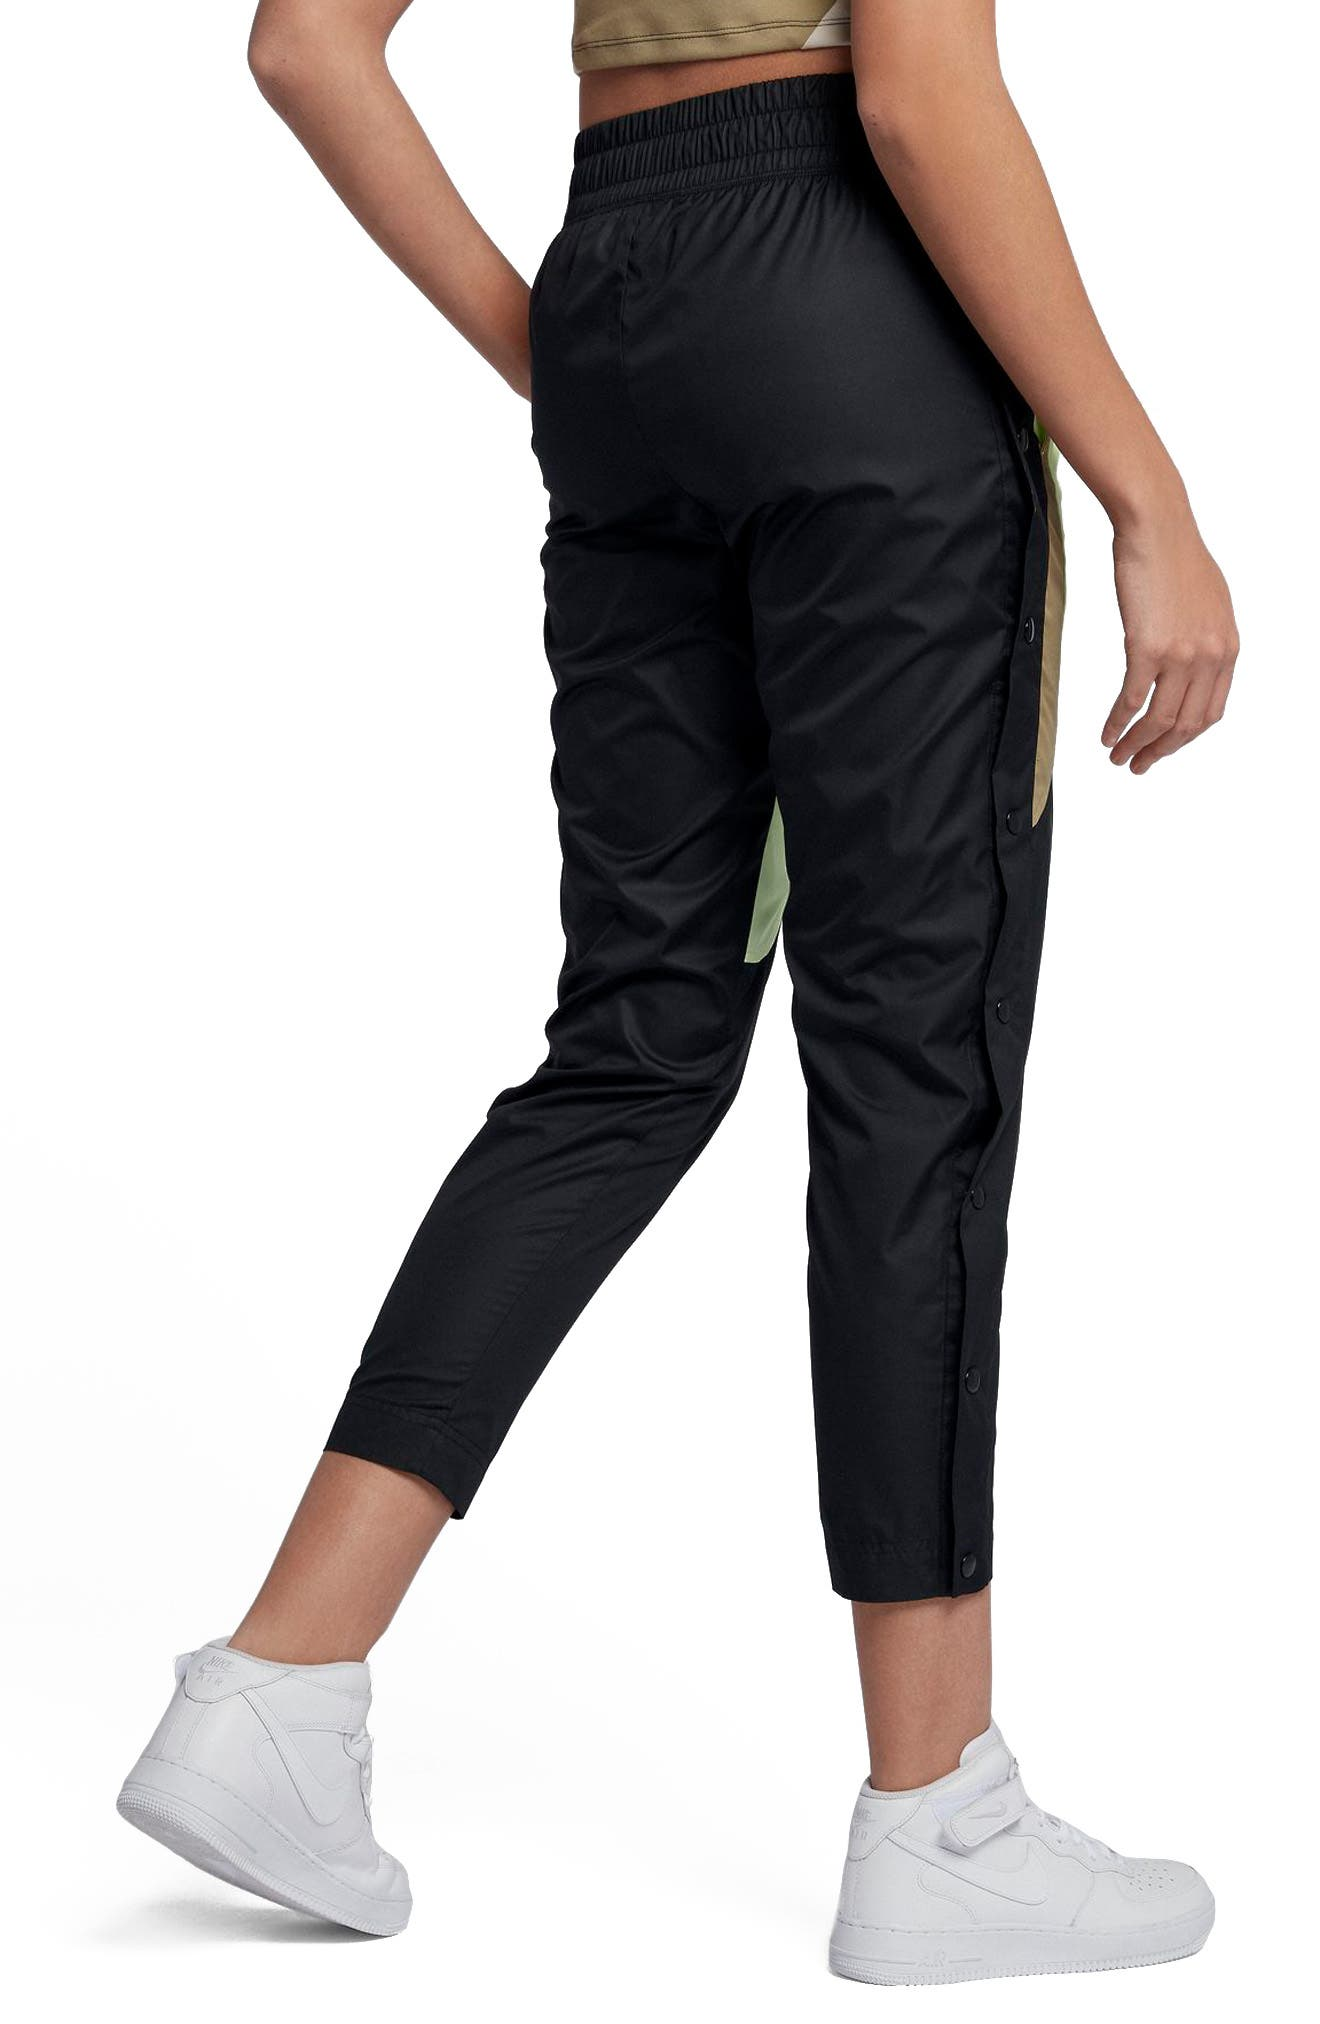 Sportswear Tearaway Woven Pants,                             Alternate thumbnail 2, color,                             Black/Black